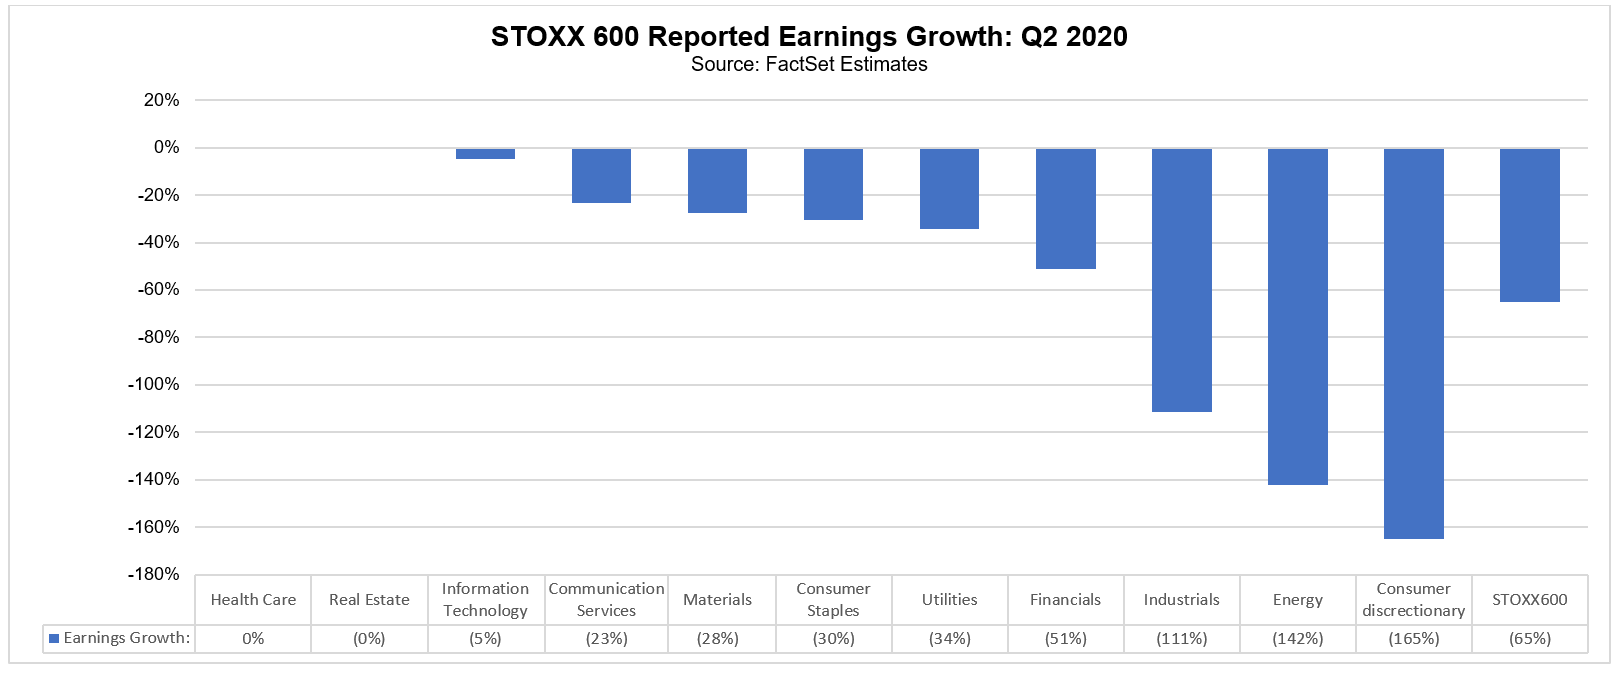 STOXX 600 reported earnings growth Q2 2020